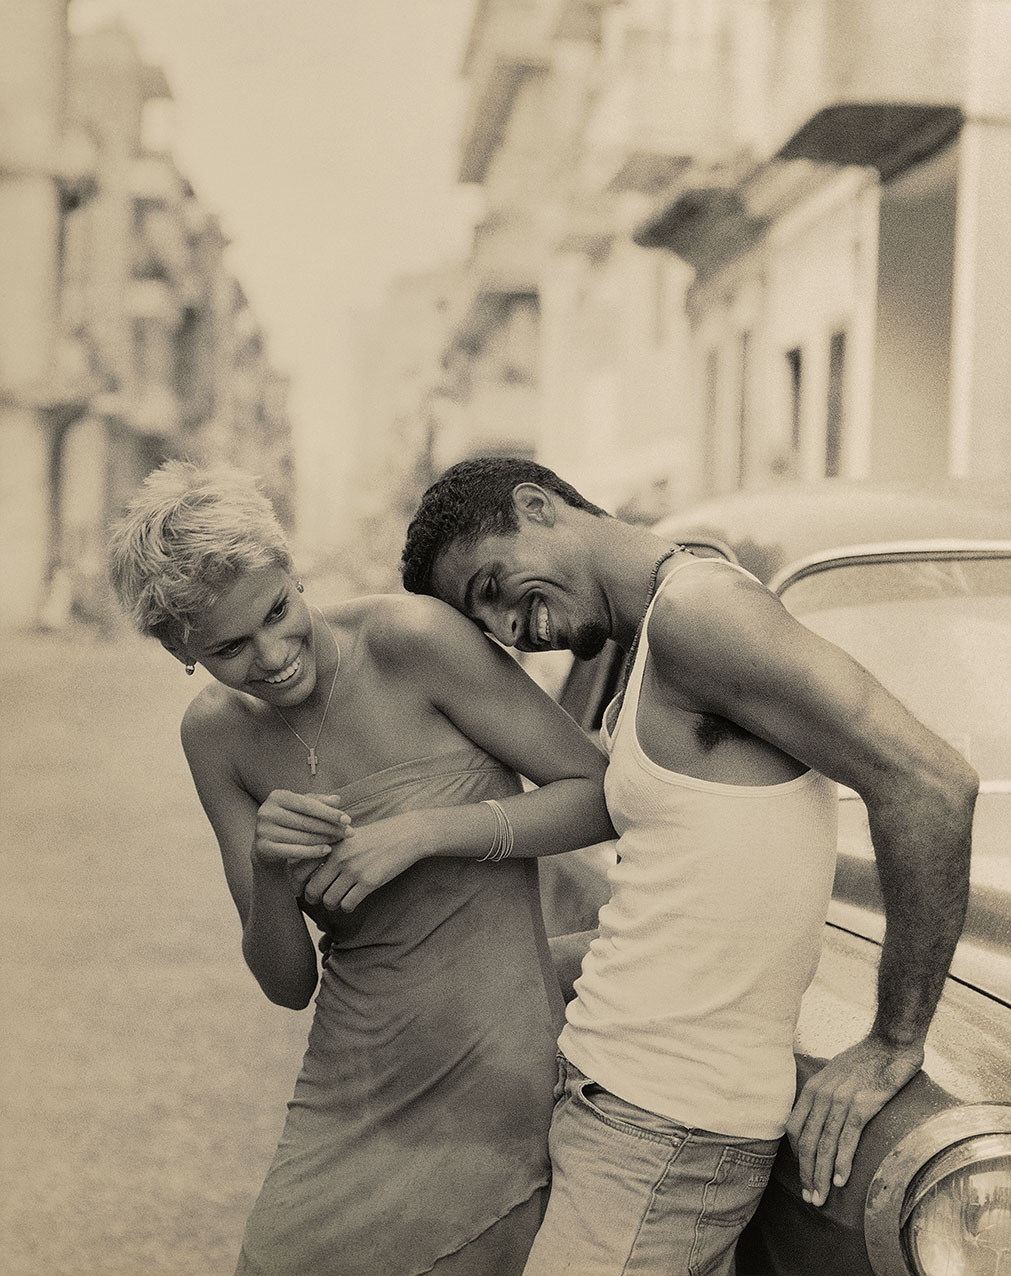 Cuba-Couple_Laughing2 sharpo.3 1276px 08